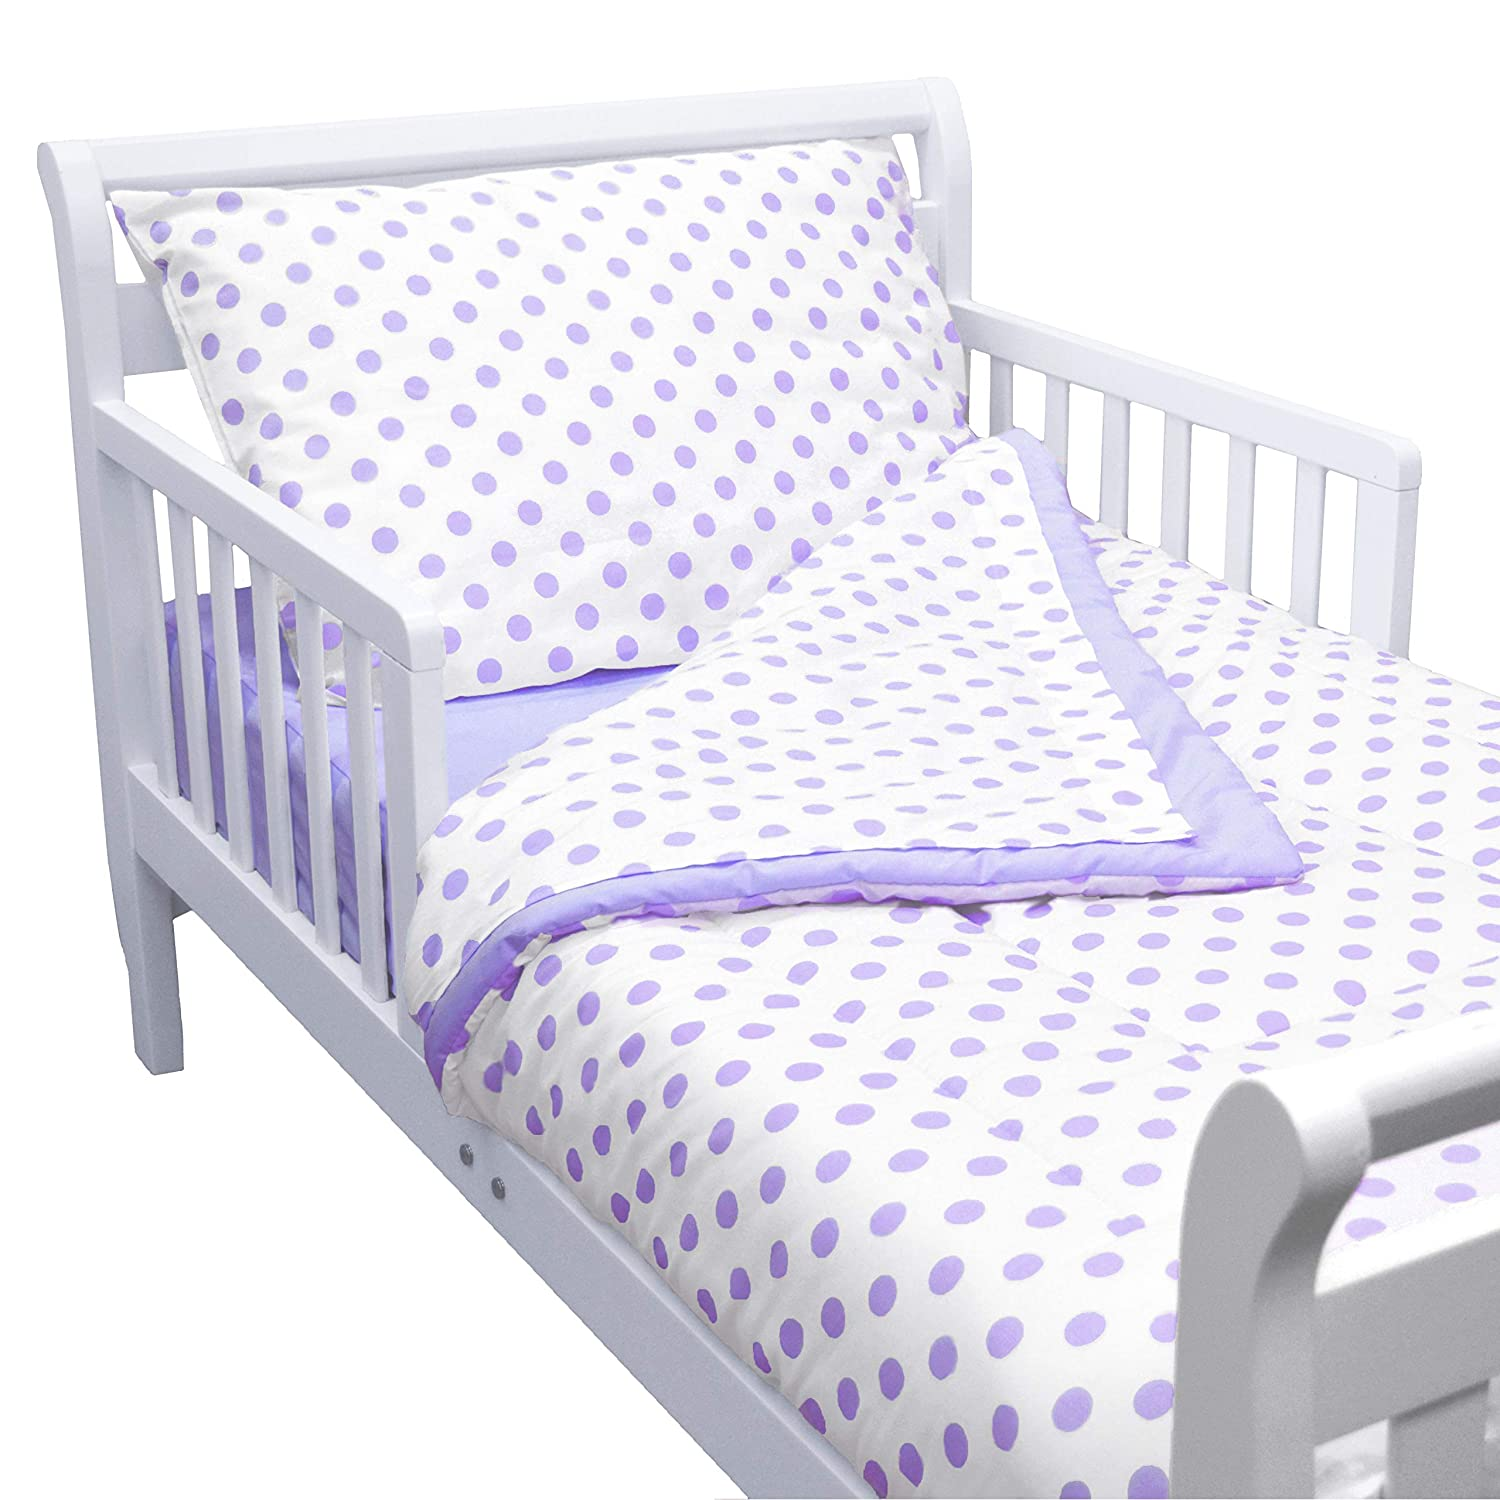 American Baby Company 100% Cotton Percale 4Piece Toddler Bedding Set, Lavender Dot, for Boys & Girls